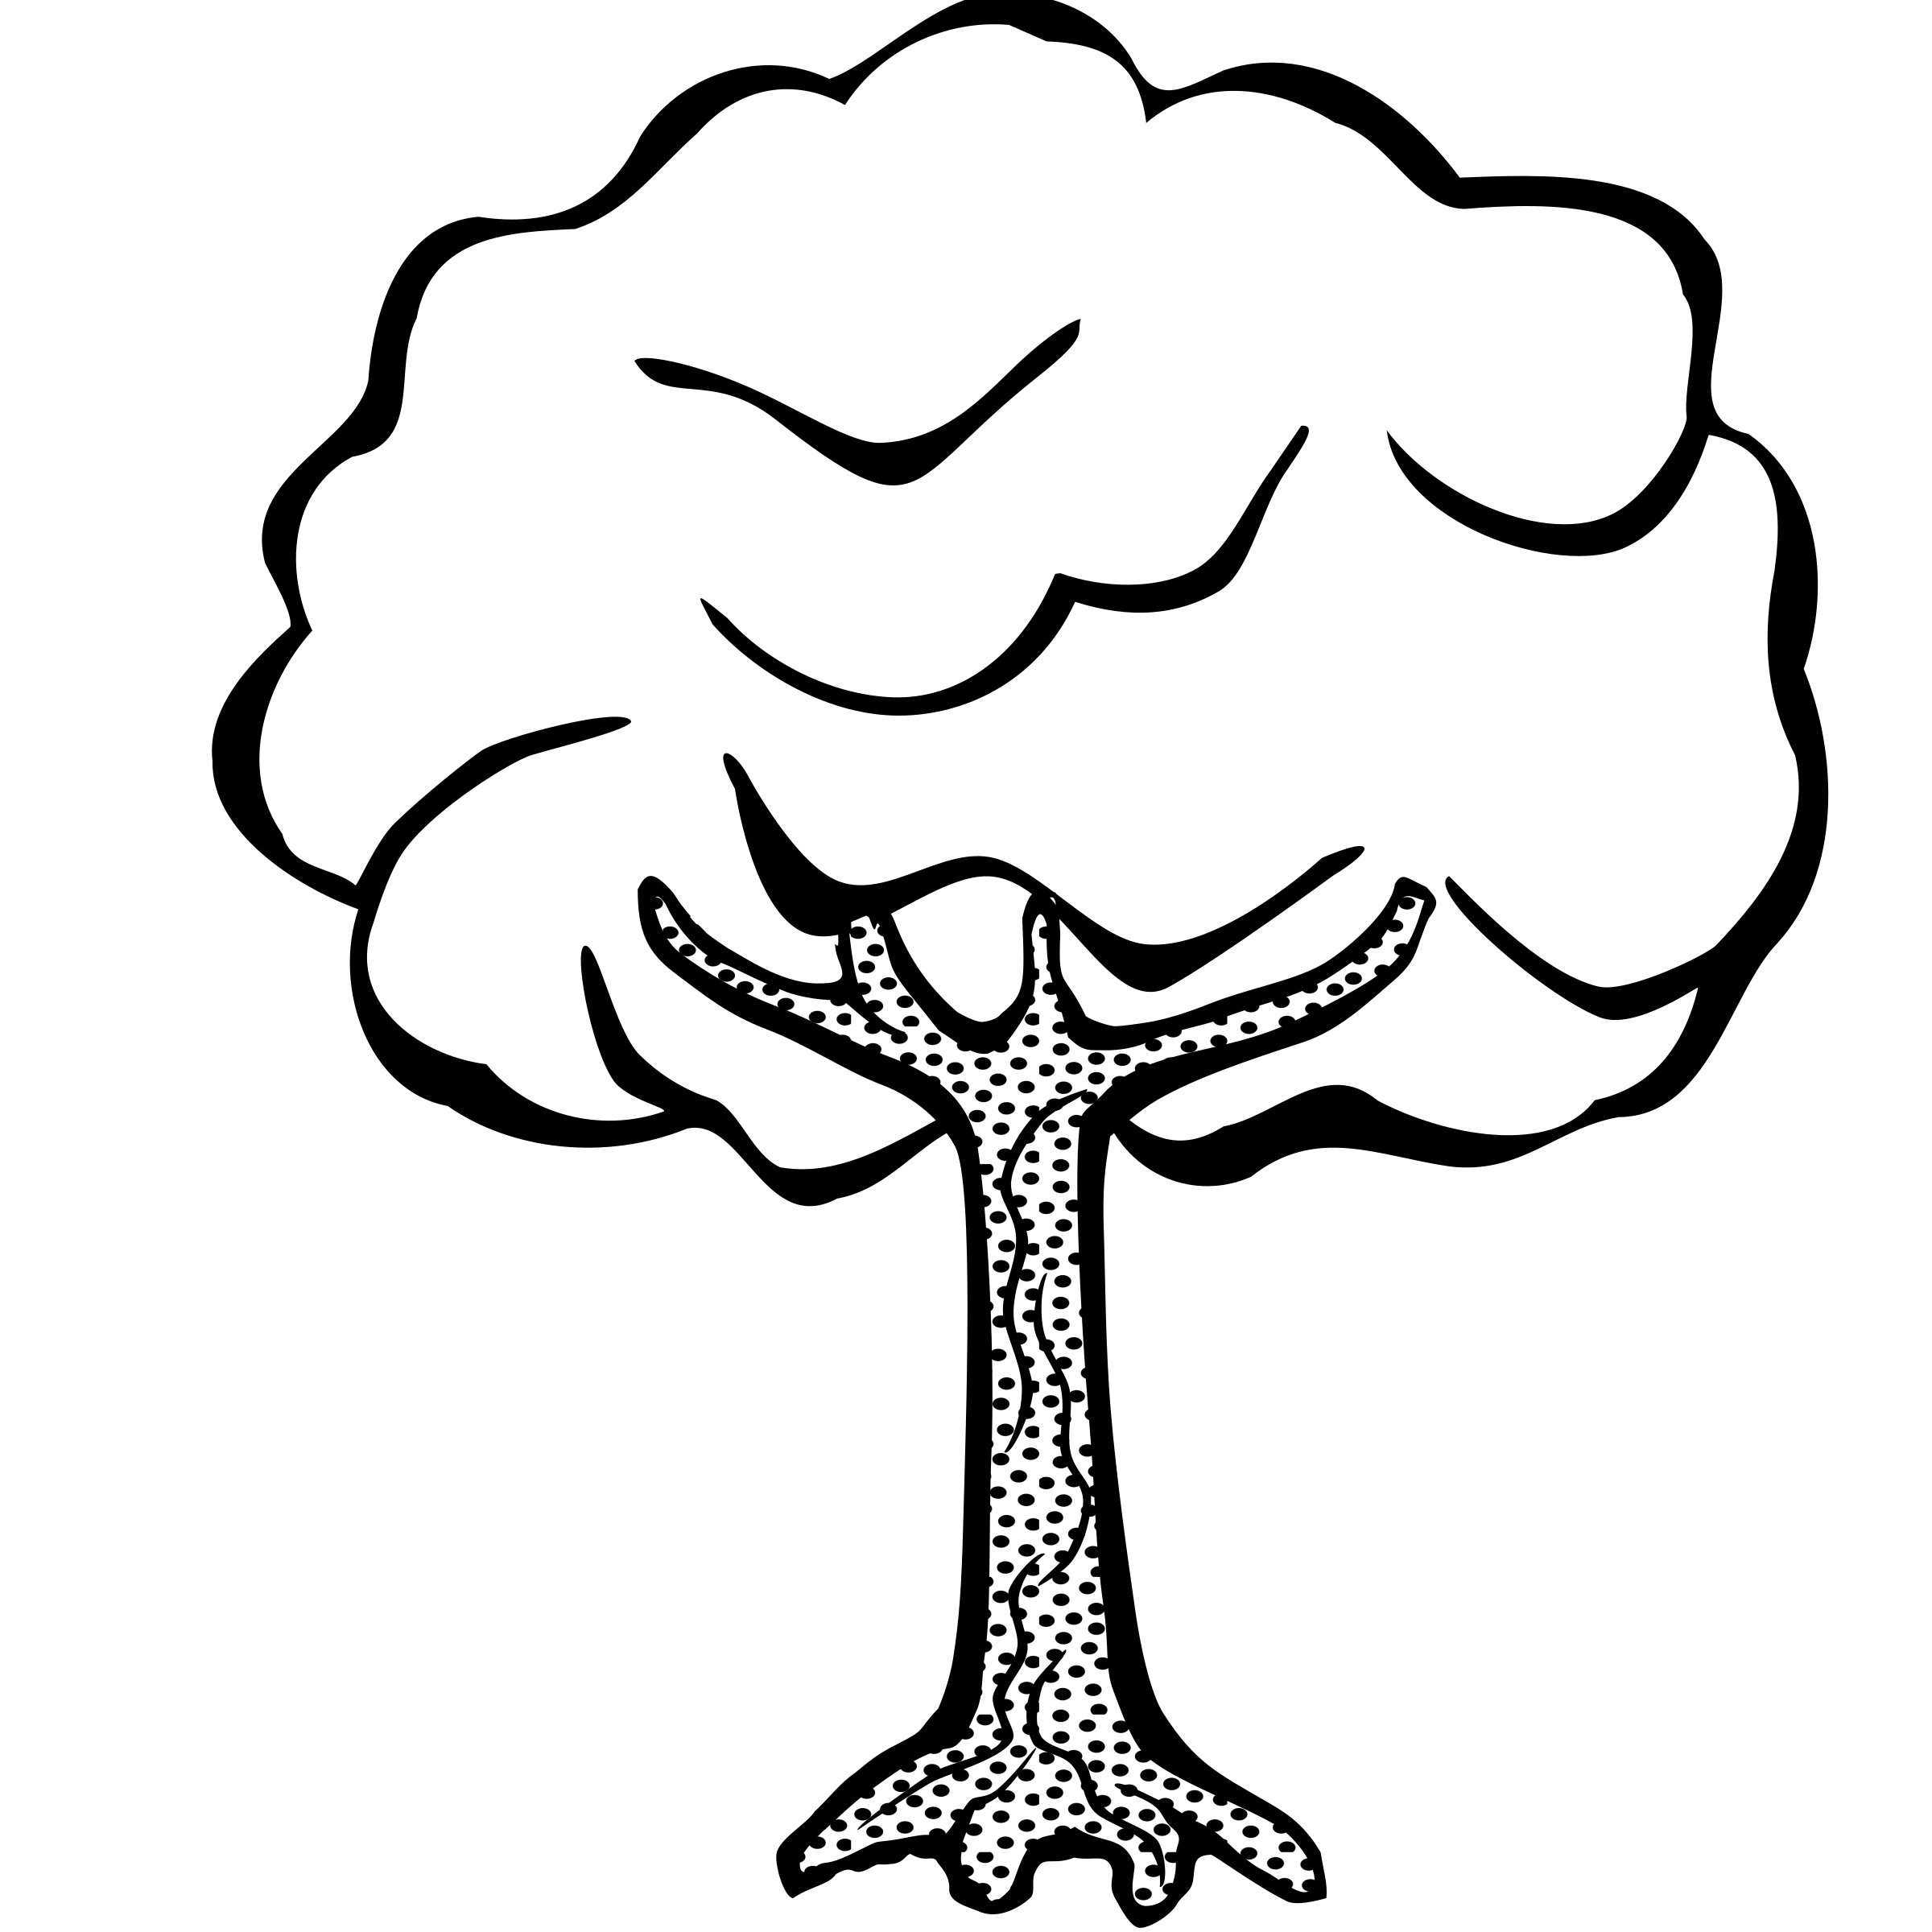 2400x2400 Extremely Creative Tree Clipart Black And White Mickey Mouse Head